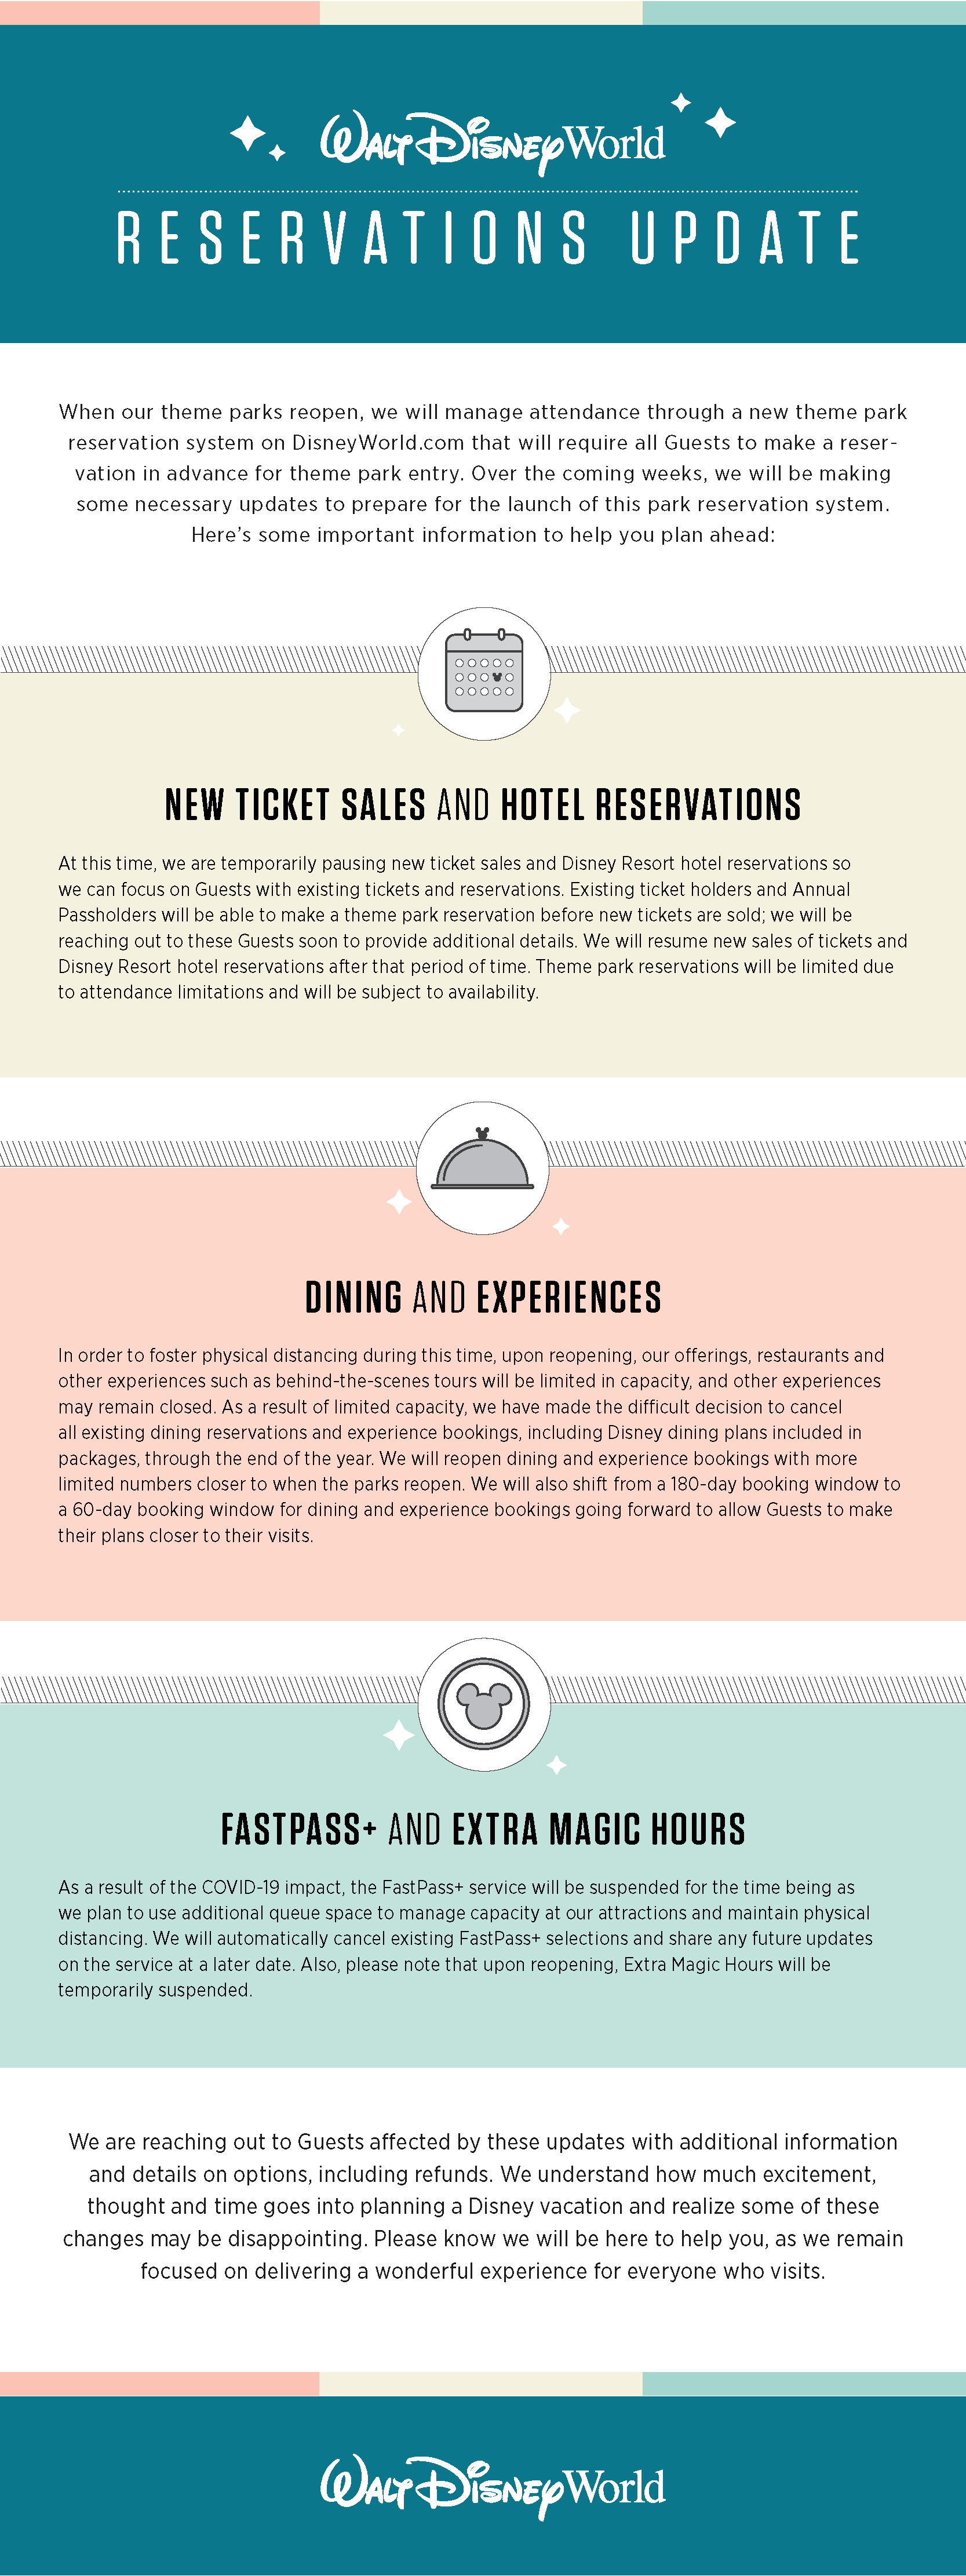 Walt Disney World Reservations Update Graphic